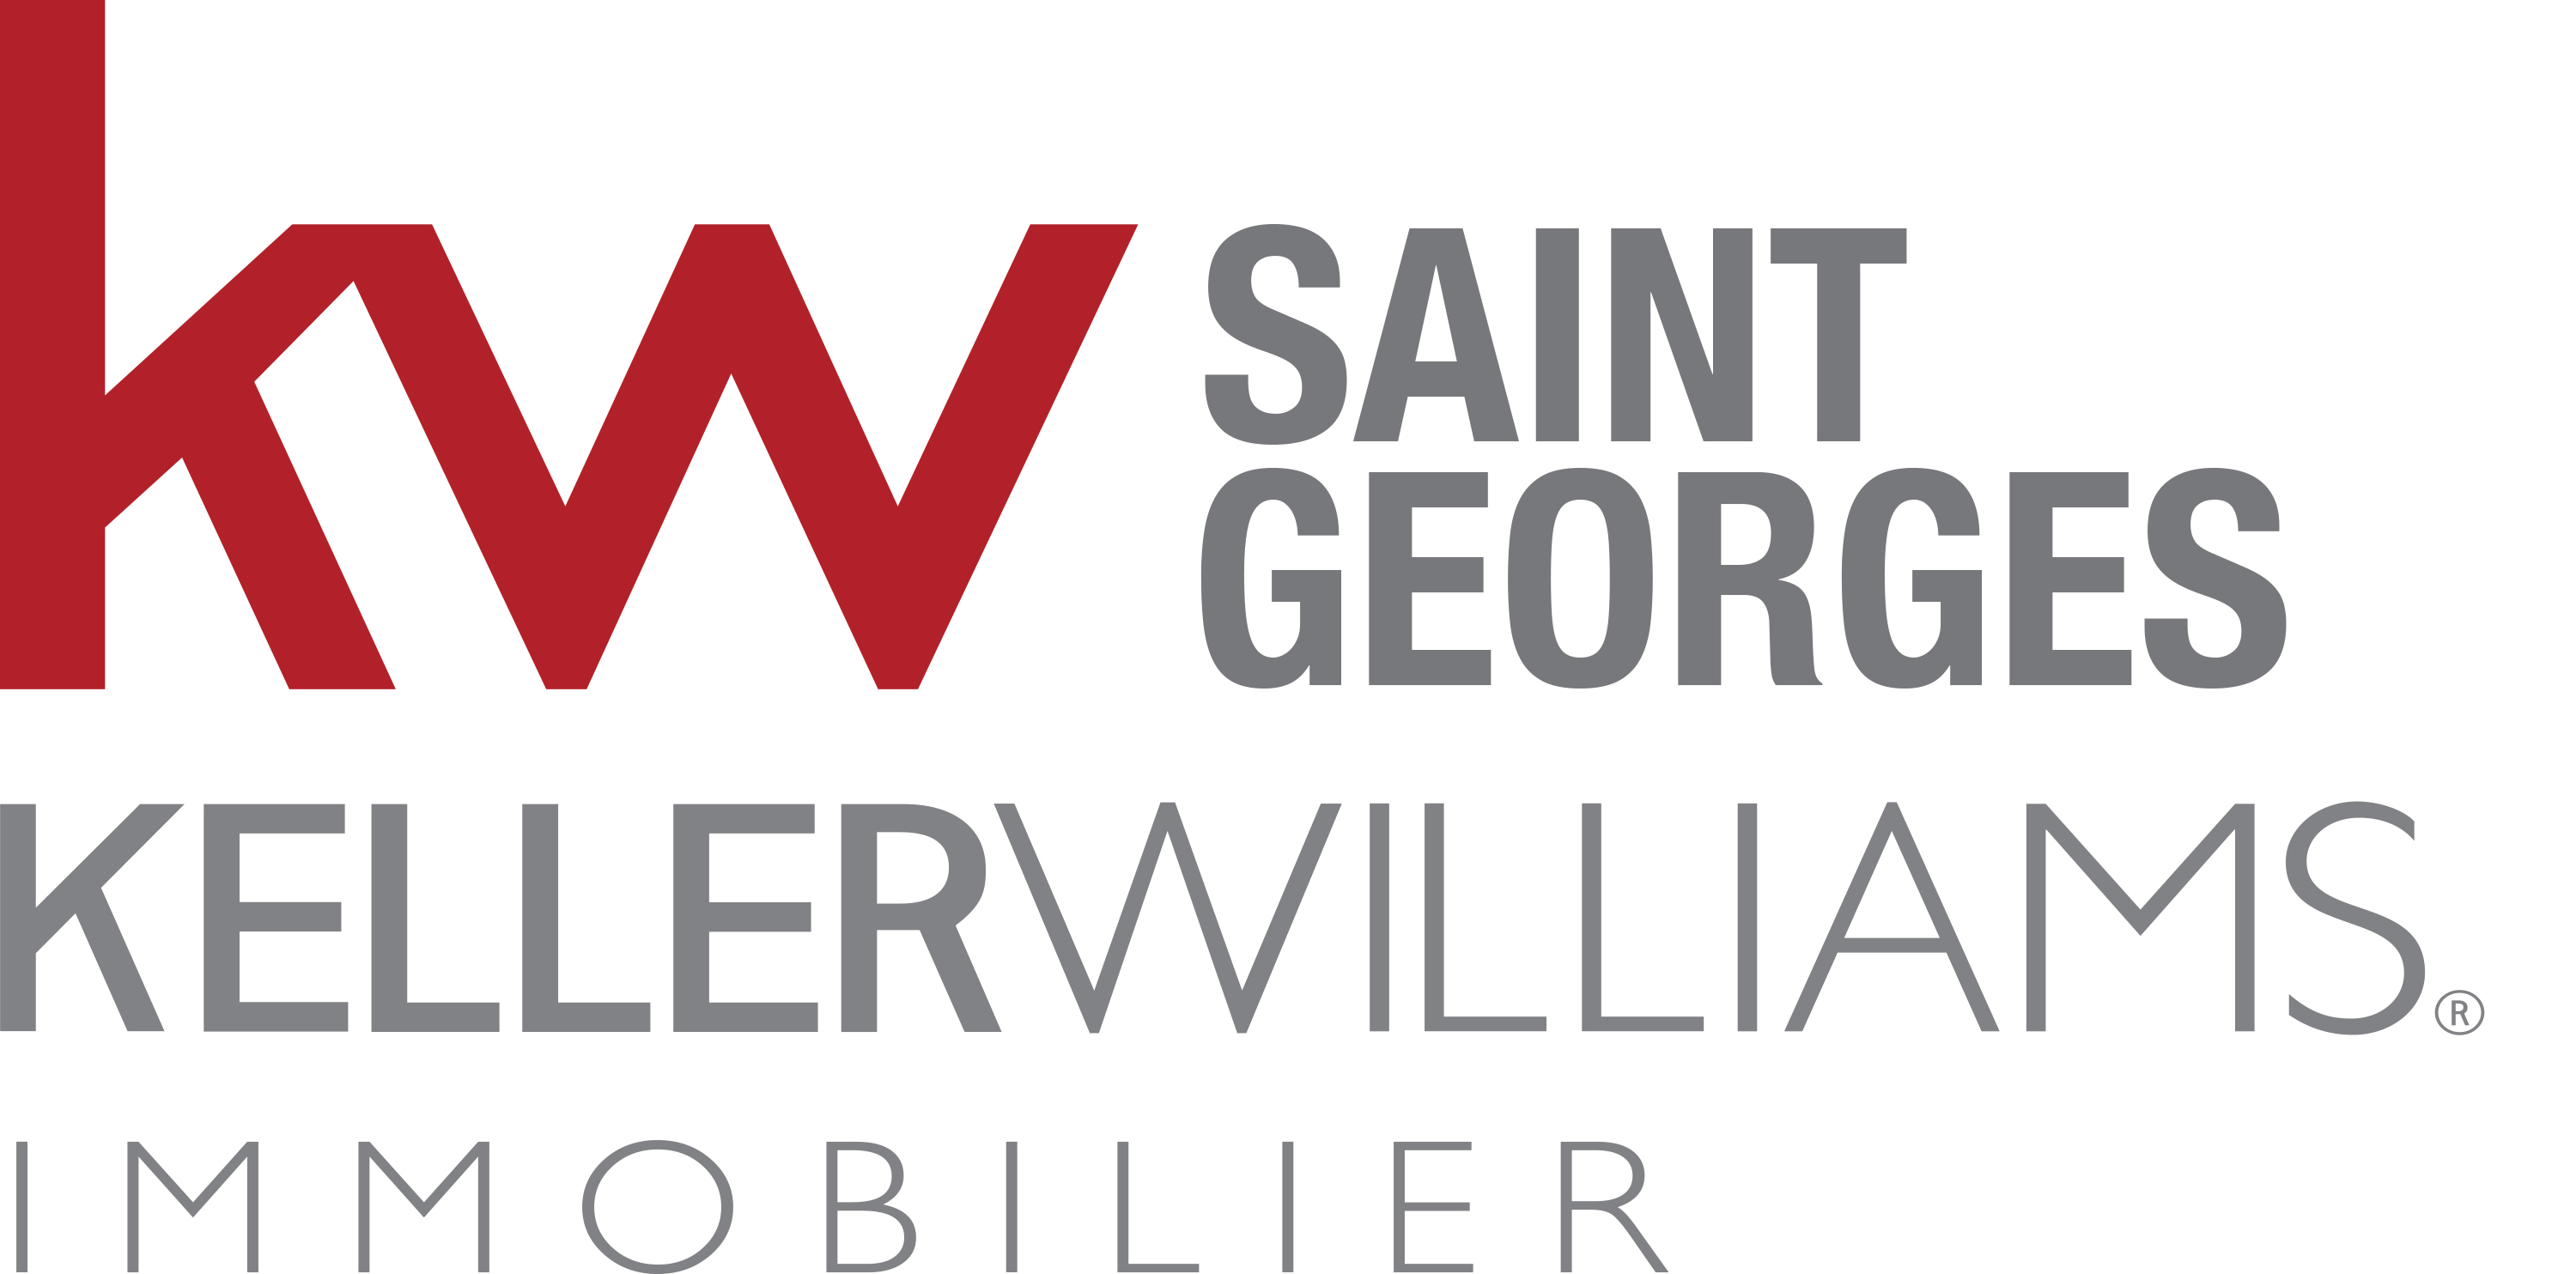 Keller Williams Saint Georges agence immobilière Toulouse (31000)